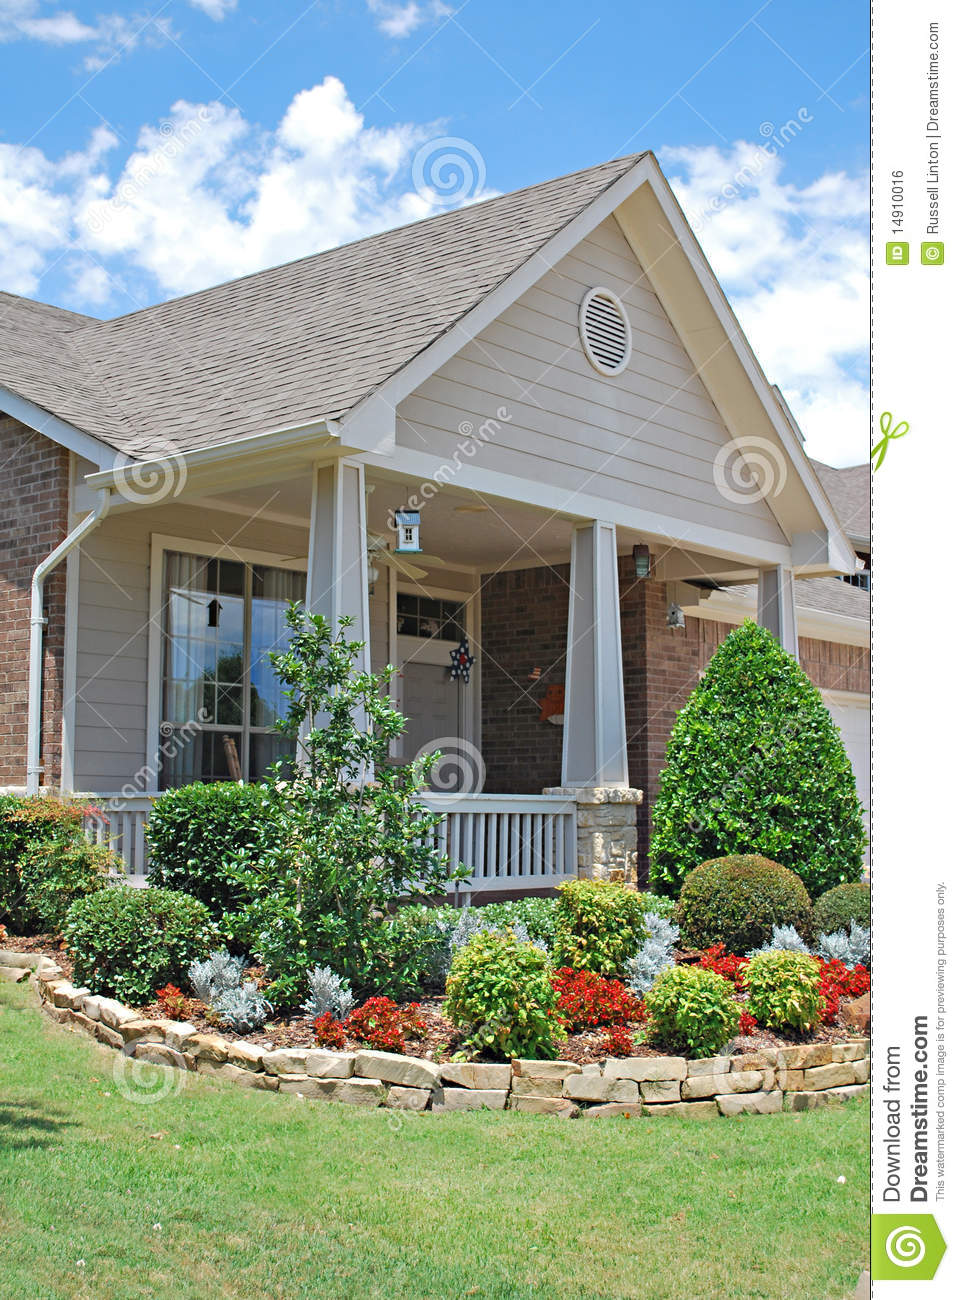 Suburban home with landscaping stock photo image of for Suburban house plans